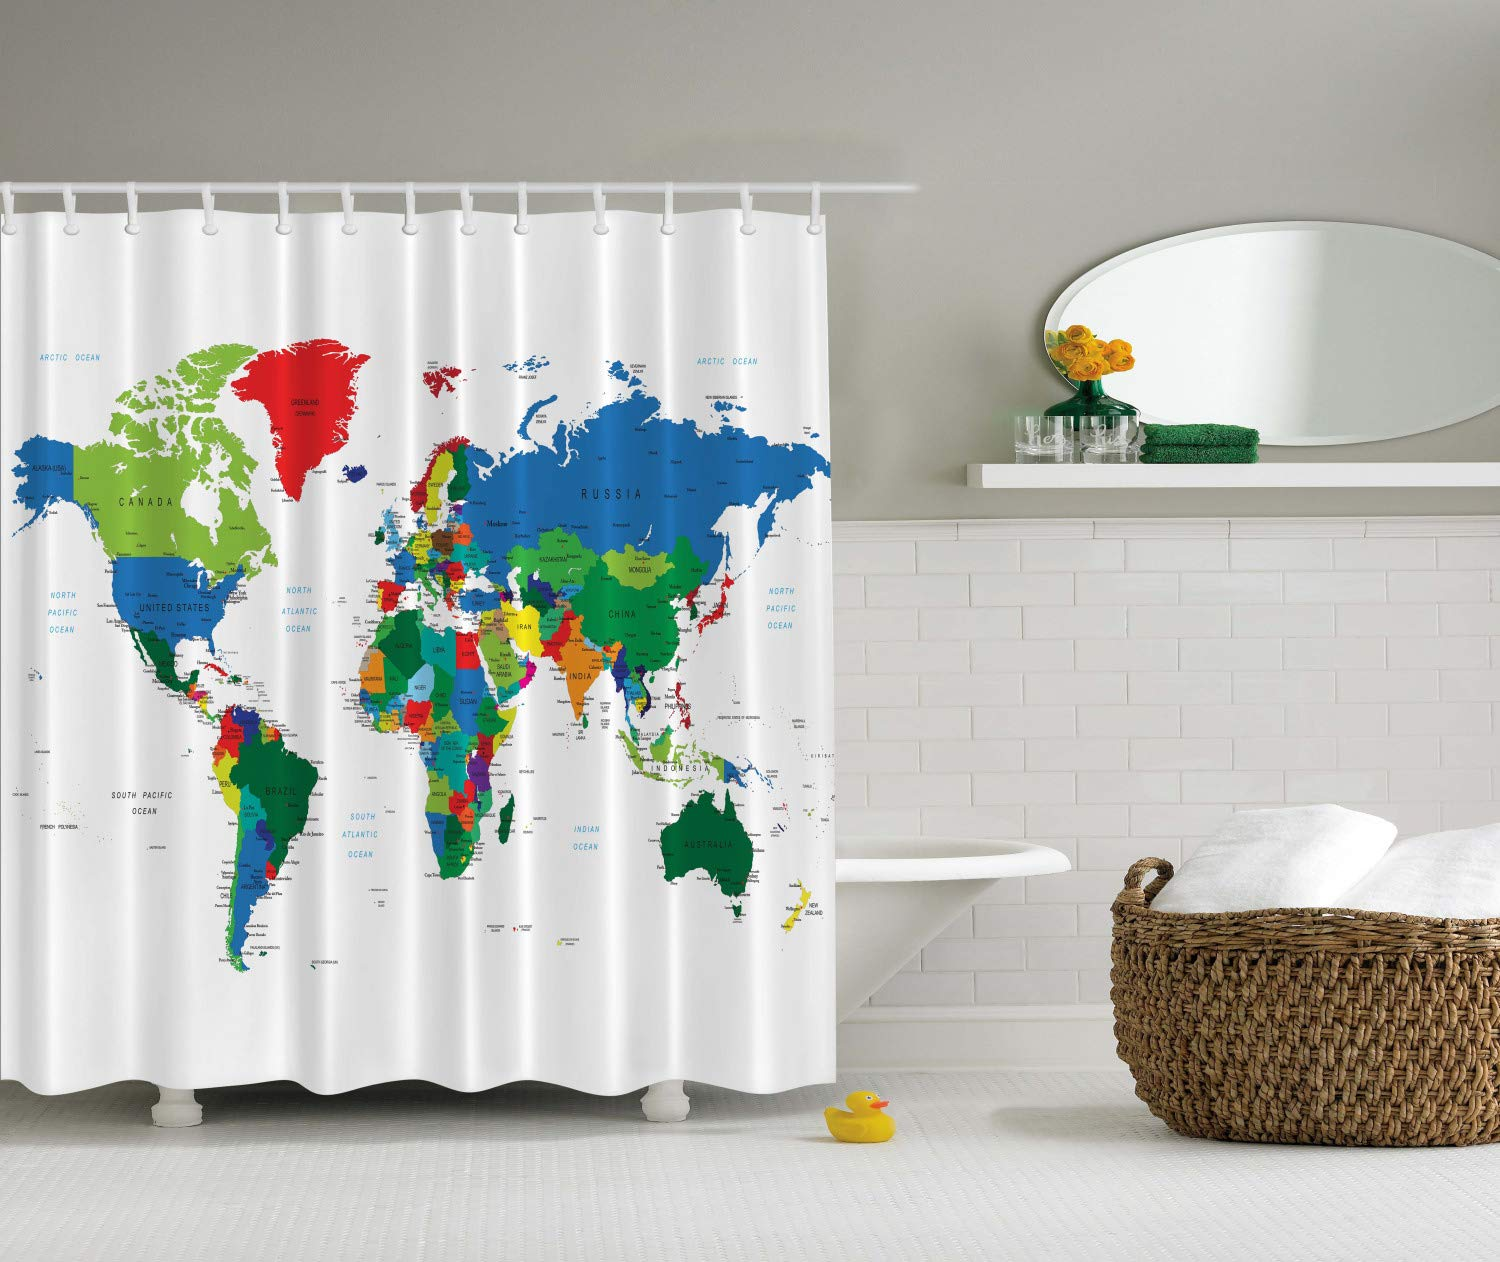 Ambesonne World Map Shower Curtain